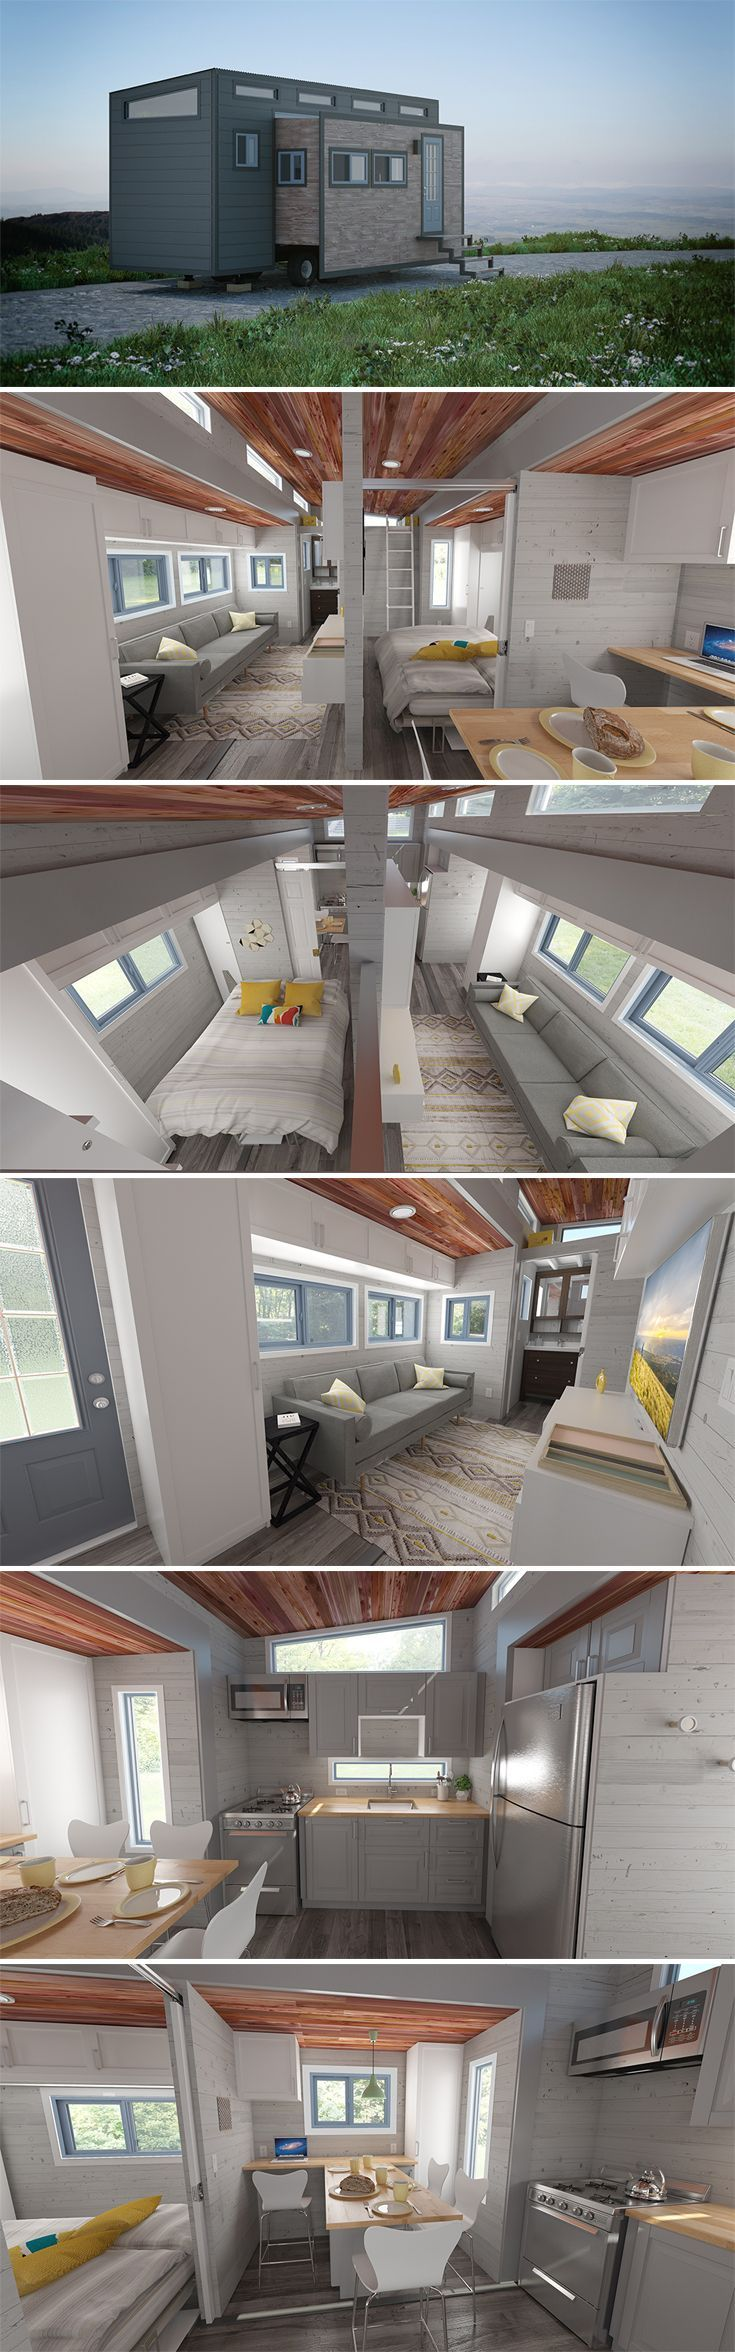 107 best images about Tiny Houses on Pinterest